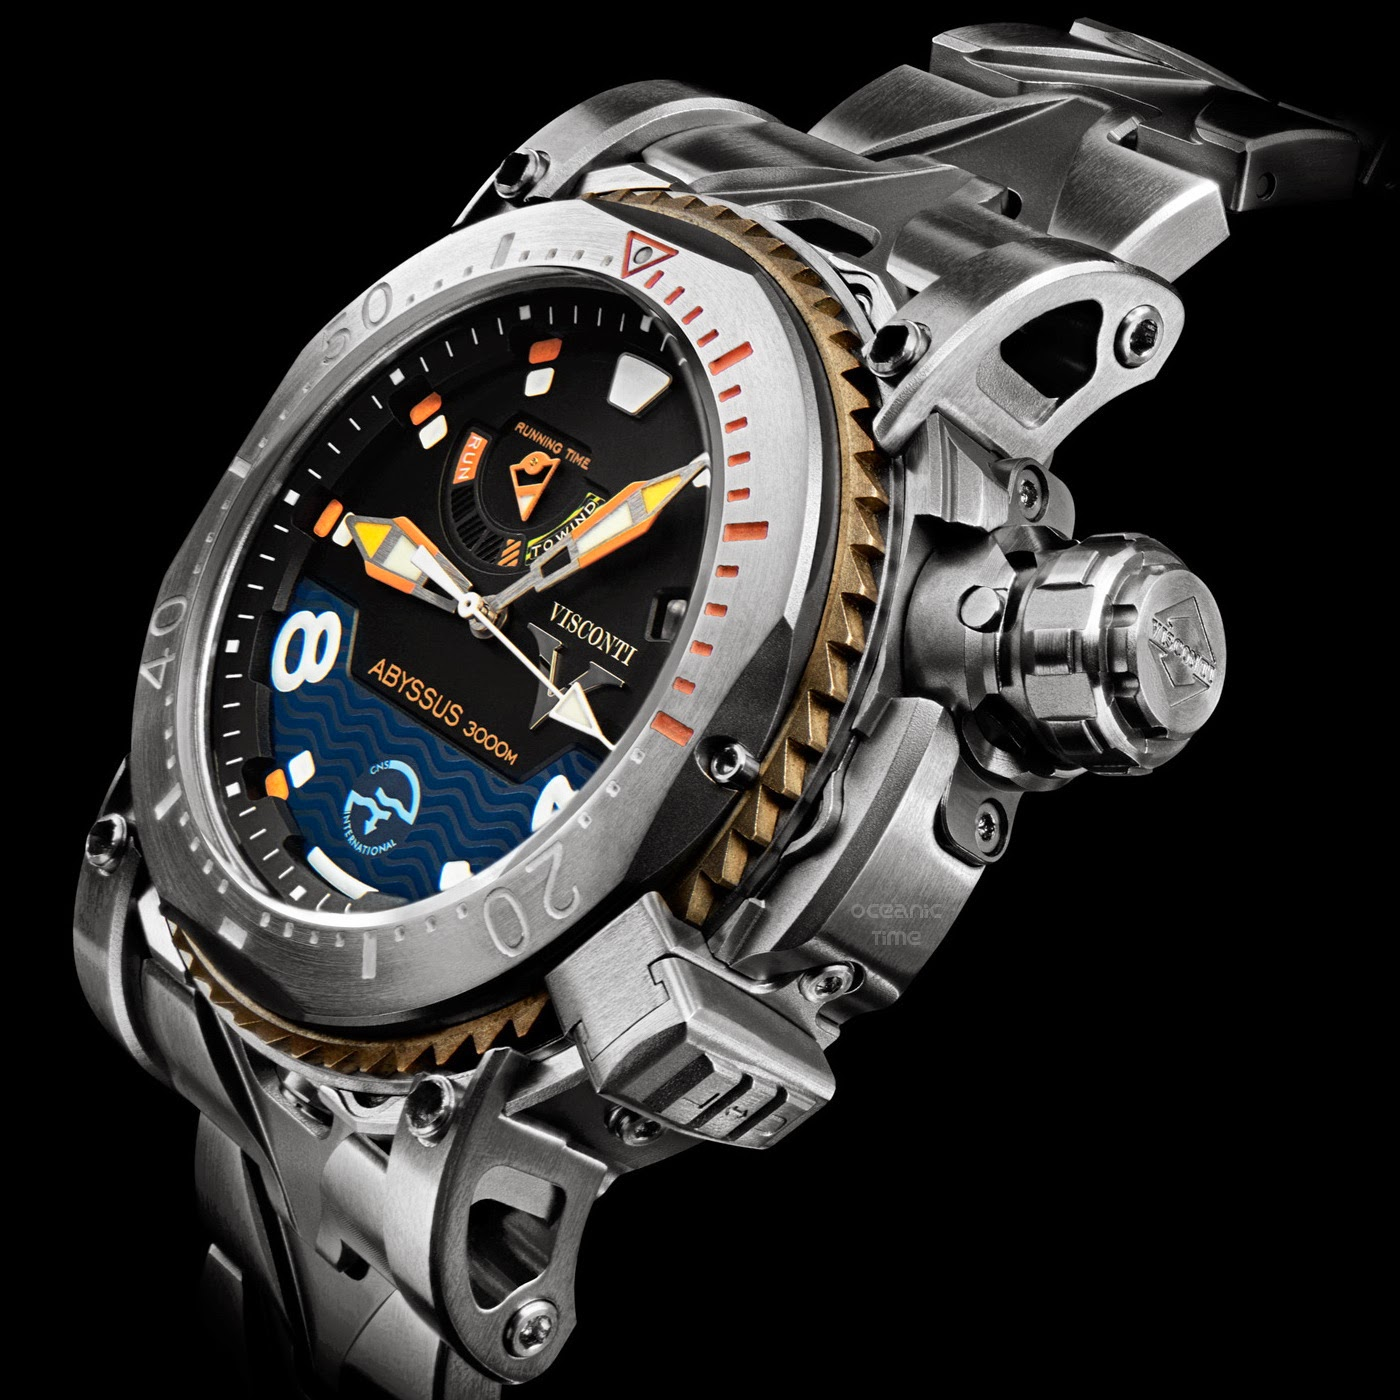 aeris watch and watches computer dive scuba products wrist for is functions combination recreational manta of diving the excellent rich in